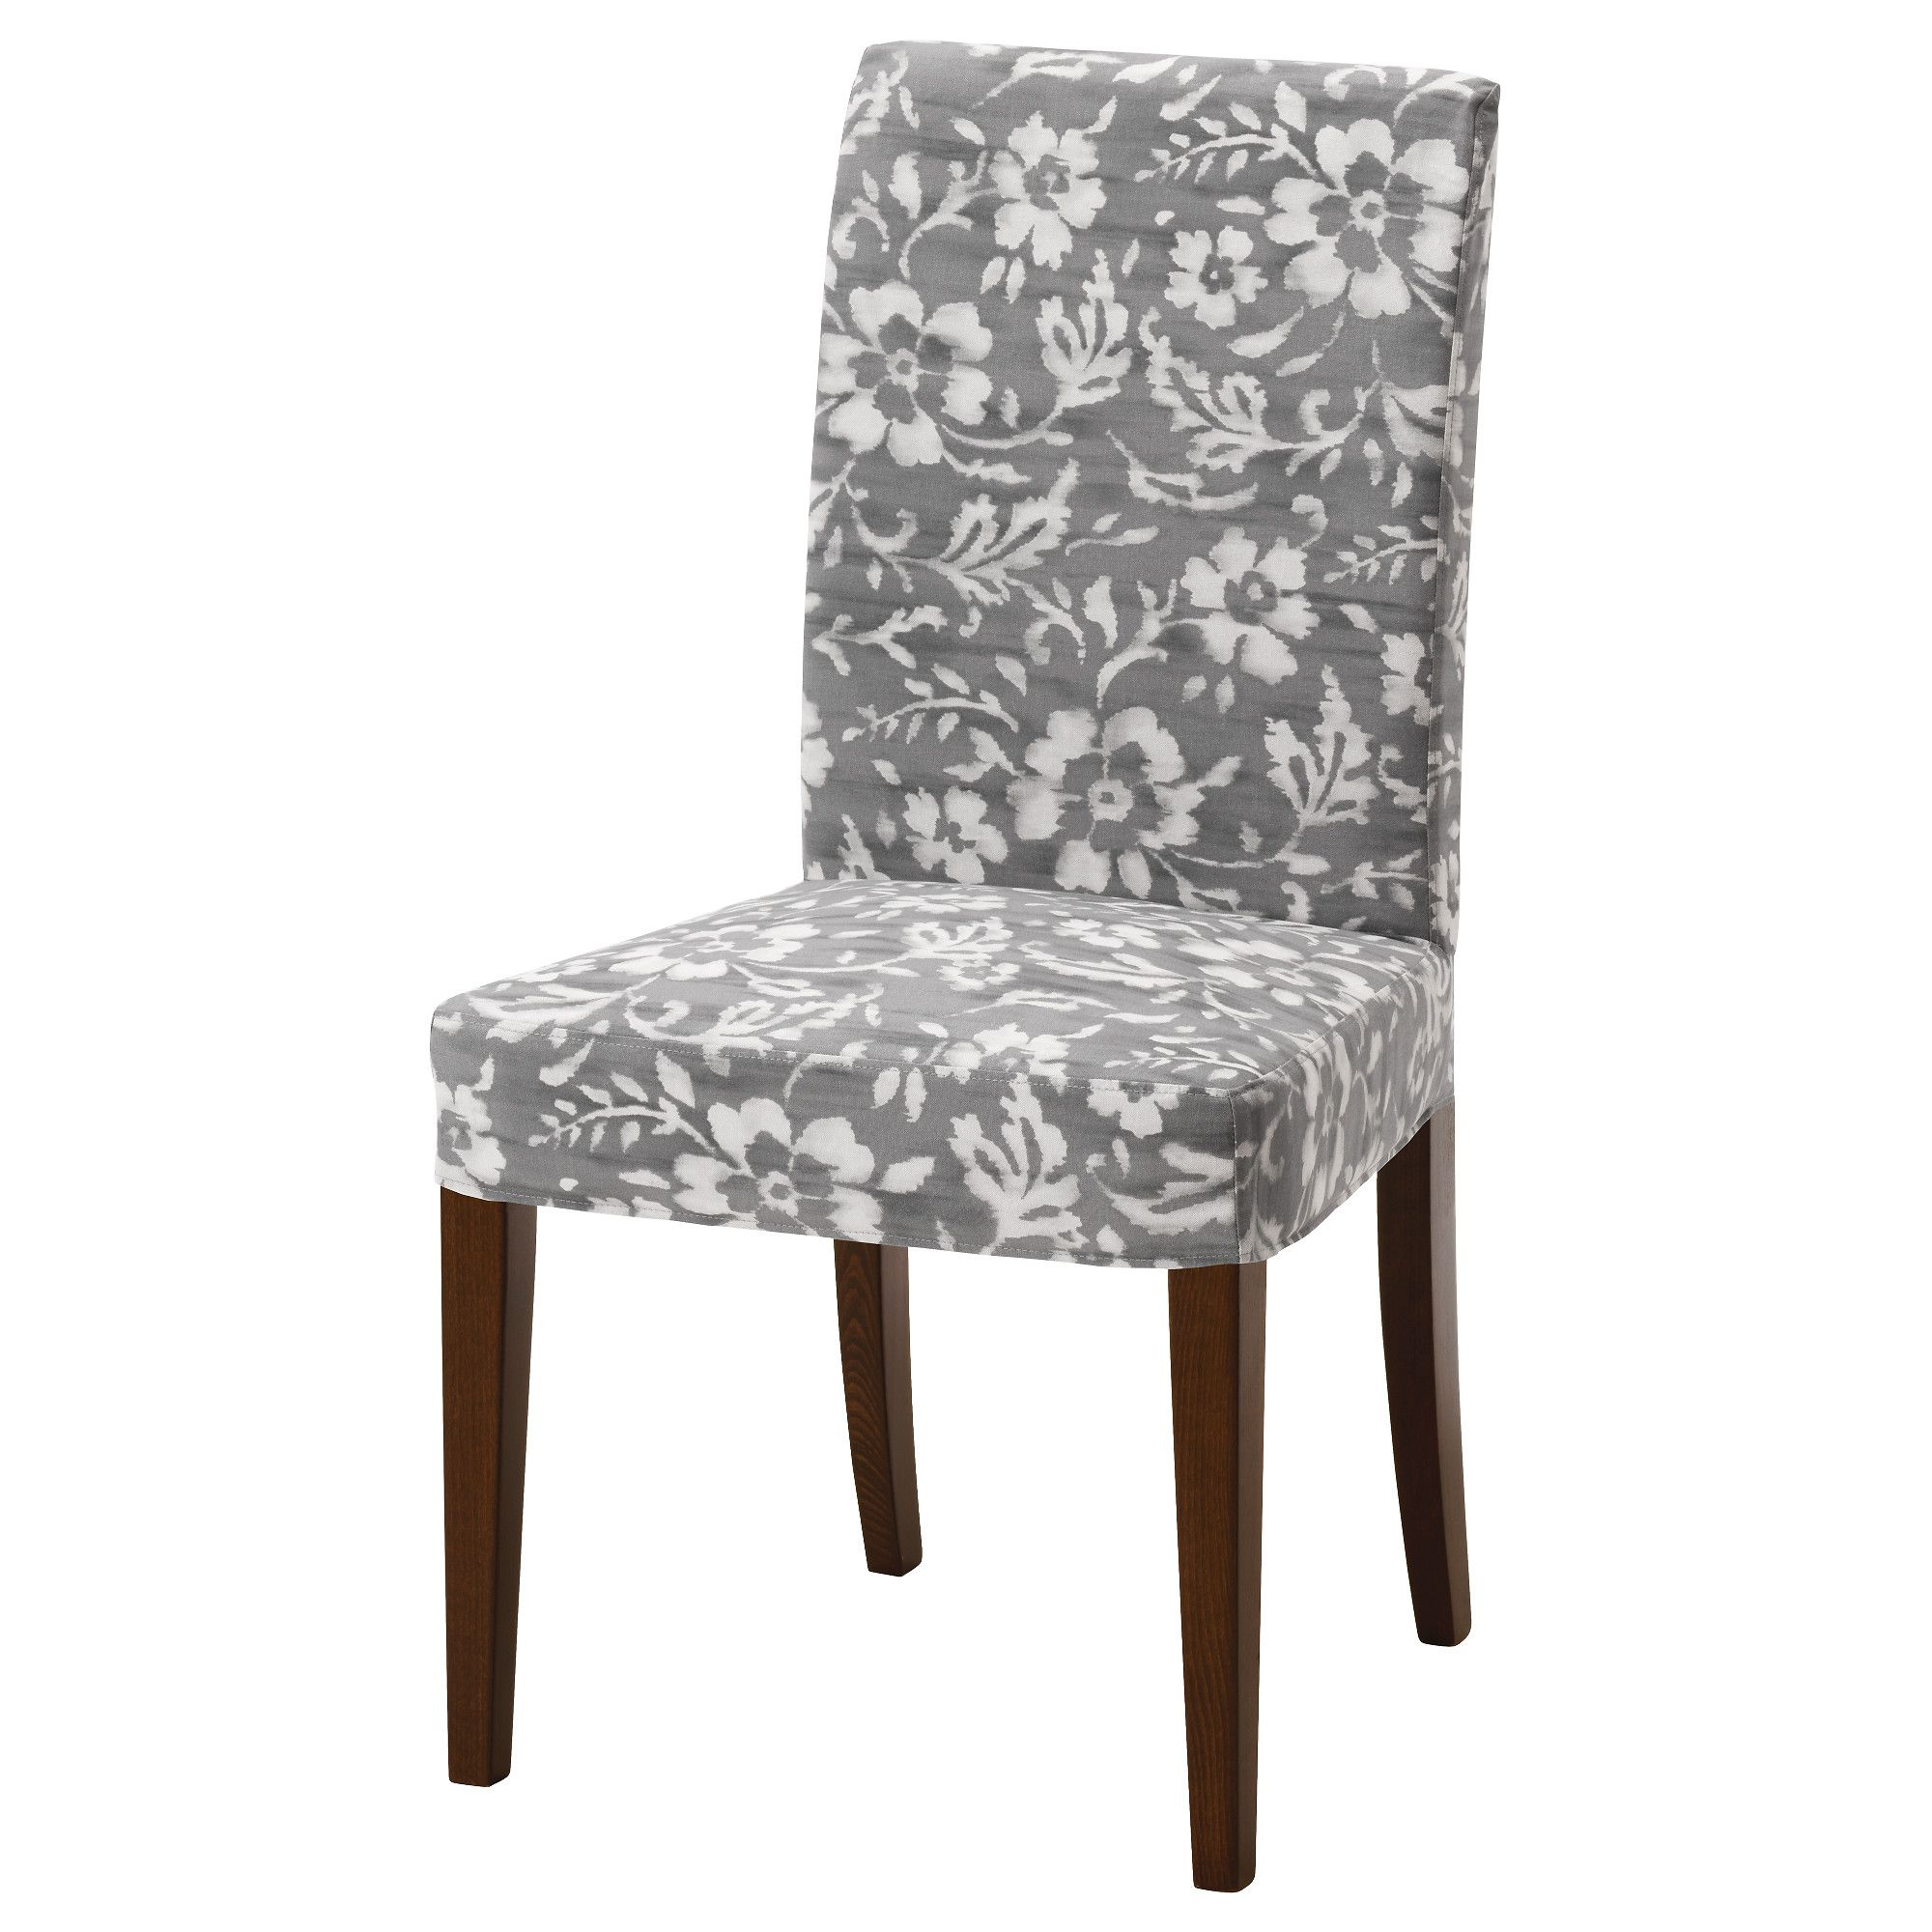 dining room chair leg covers office vitra ikea henriksdal hovsten gray white the legs are made of